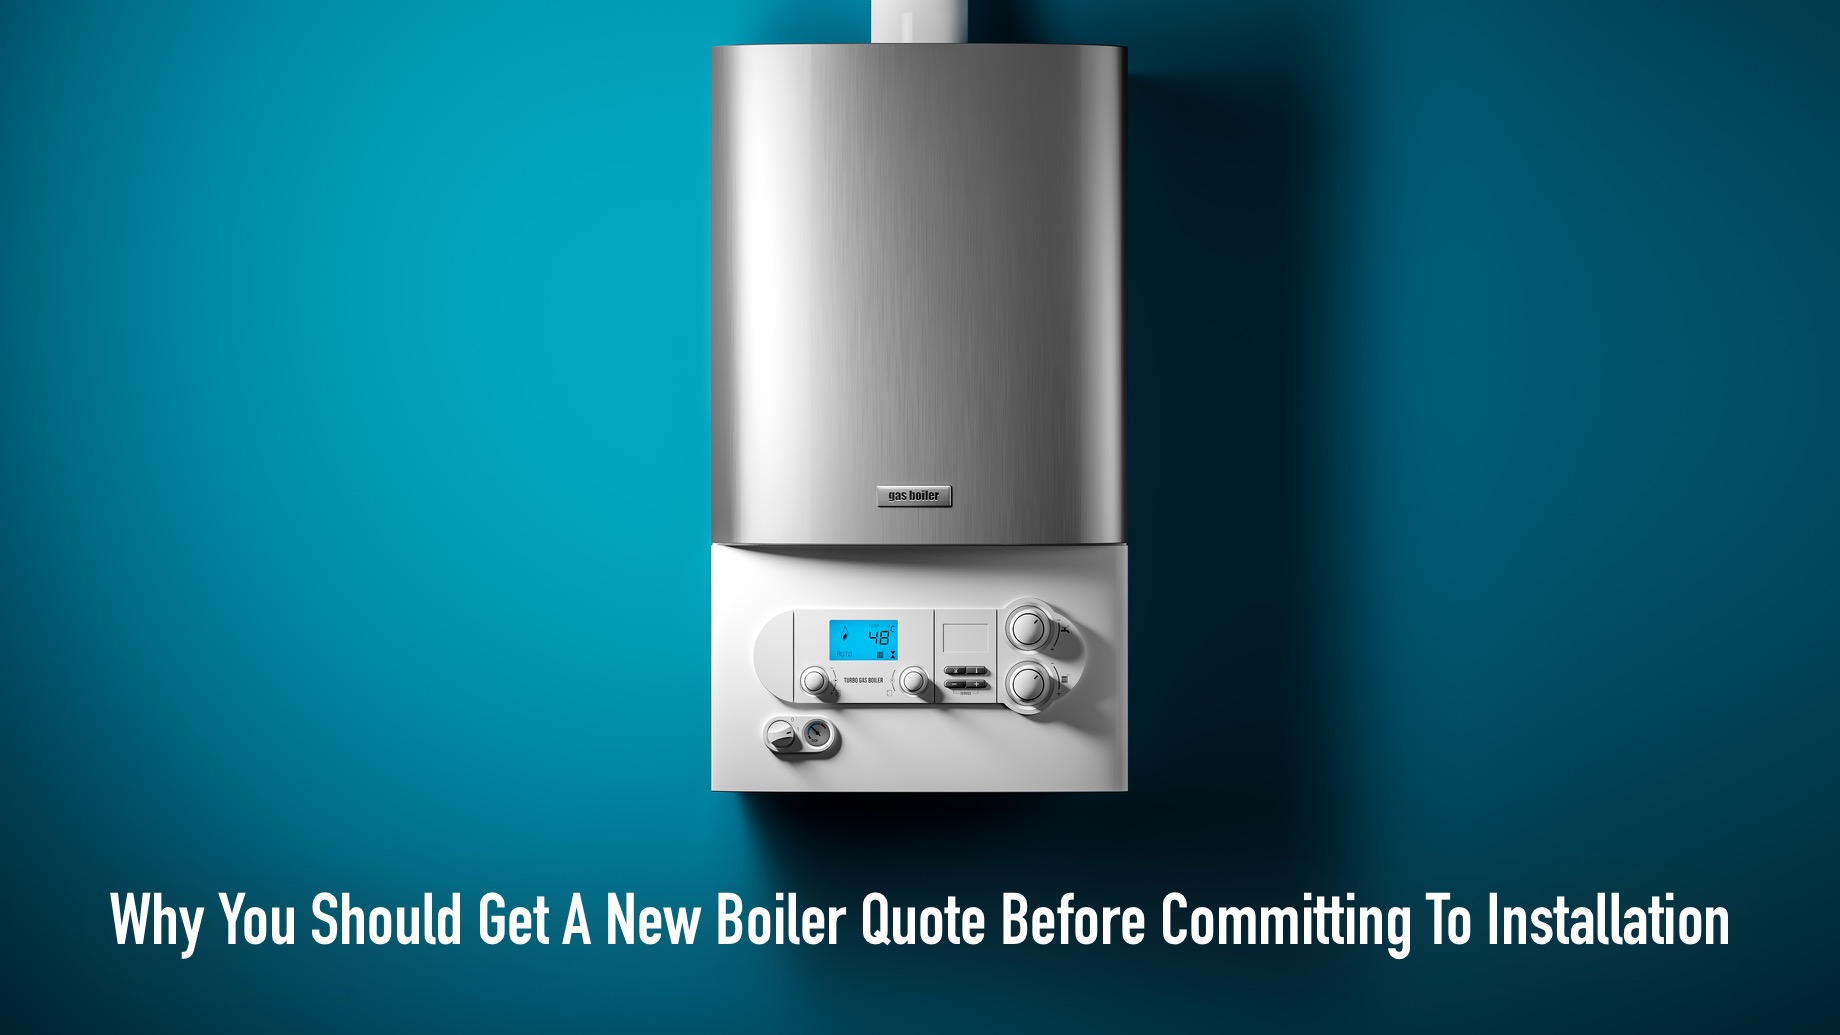 Why You Should Get A New Boiler Quote Before Committing To Installation